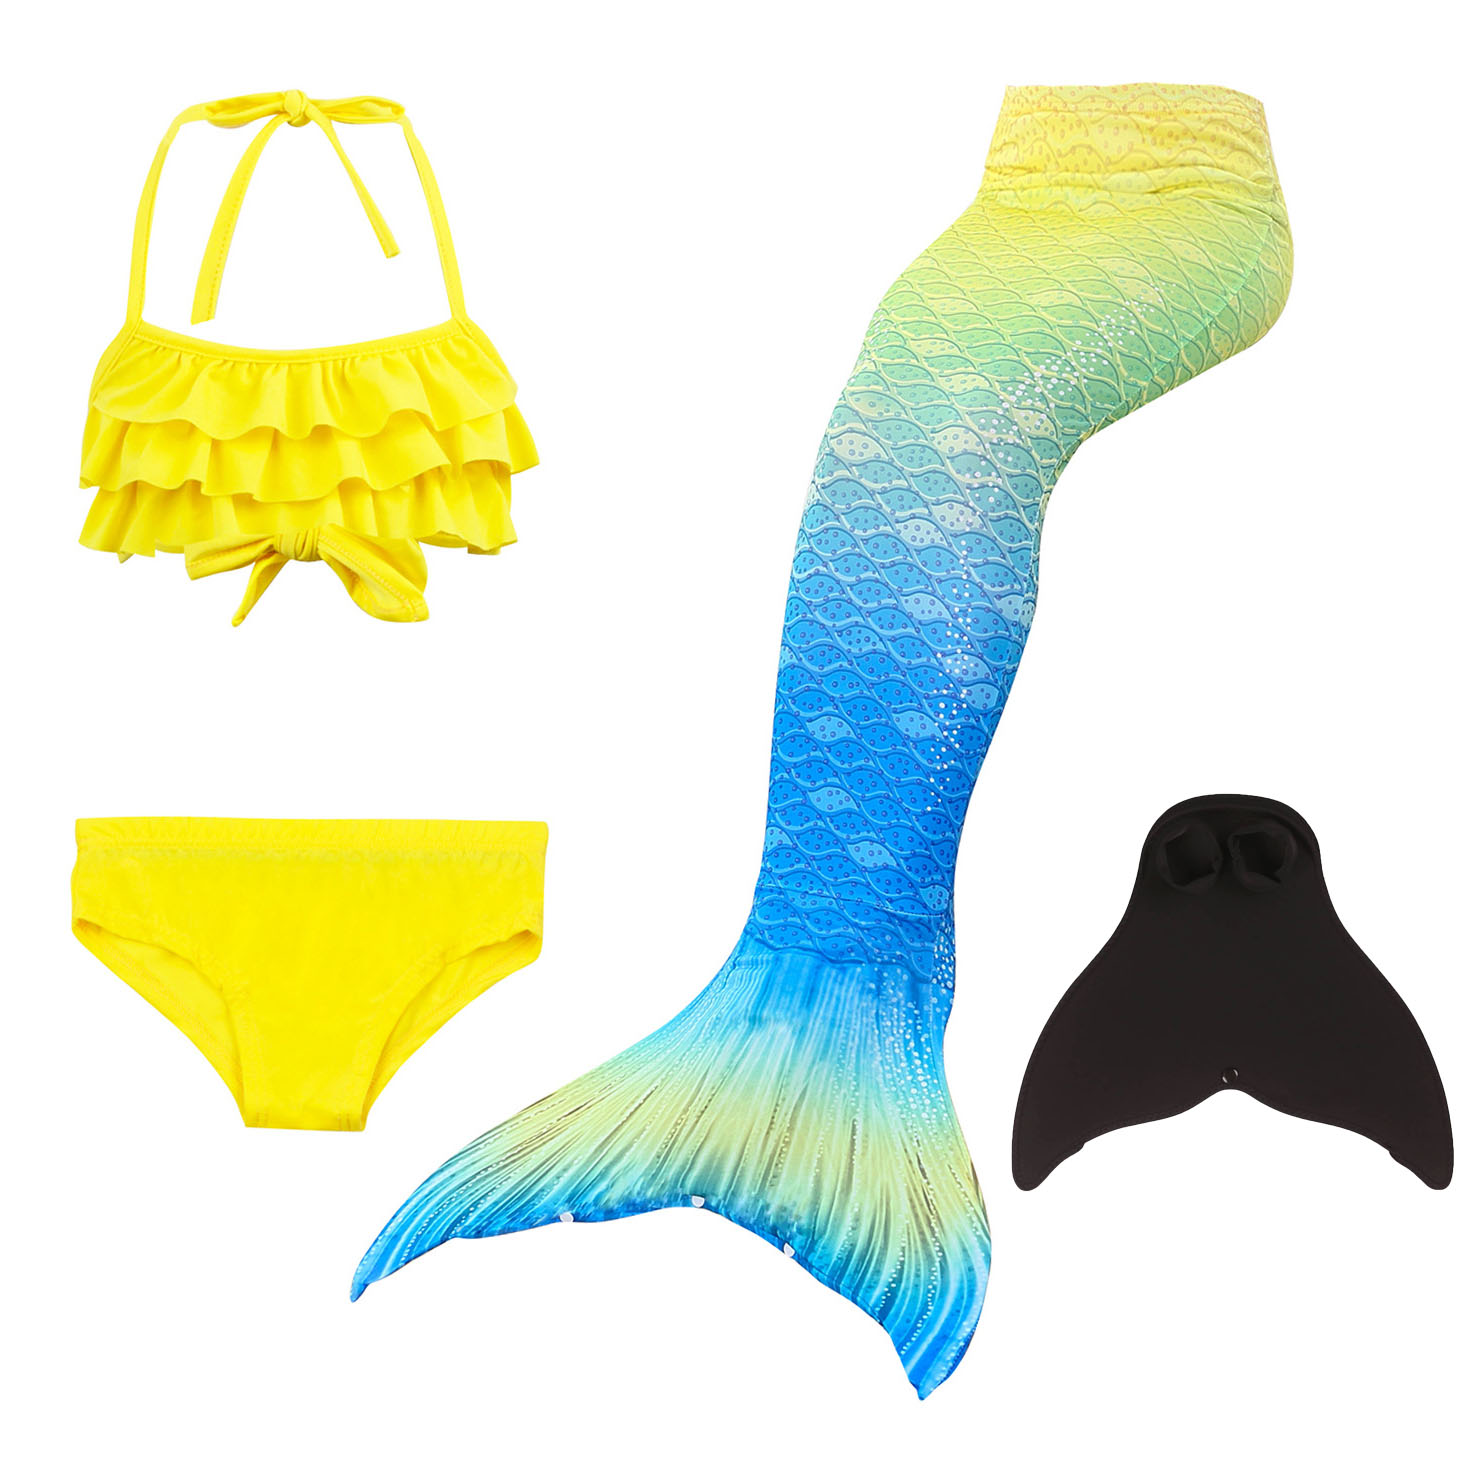 Kids Fin Swimsuit Bathing Clothes Suit Tail Mermaid Carnival Costumes Swimsuit For Girls Swimming Costume